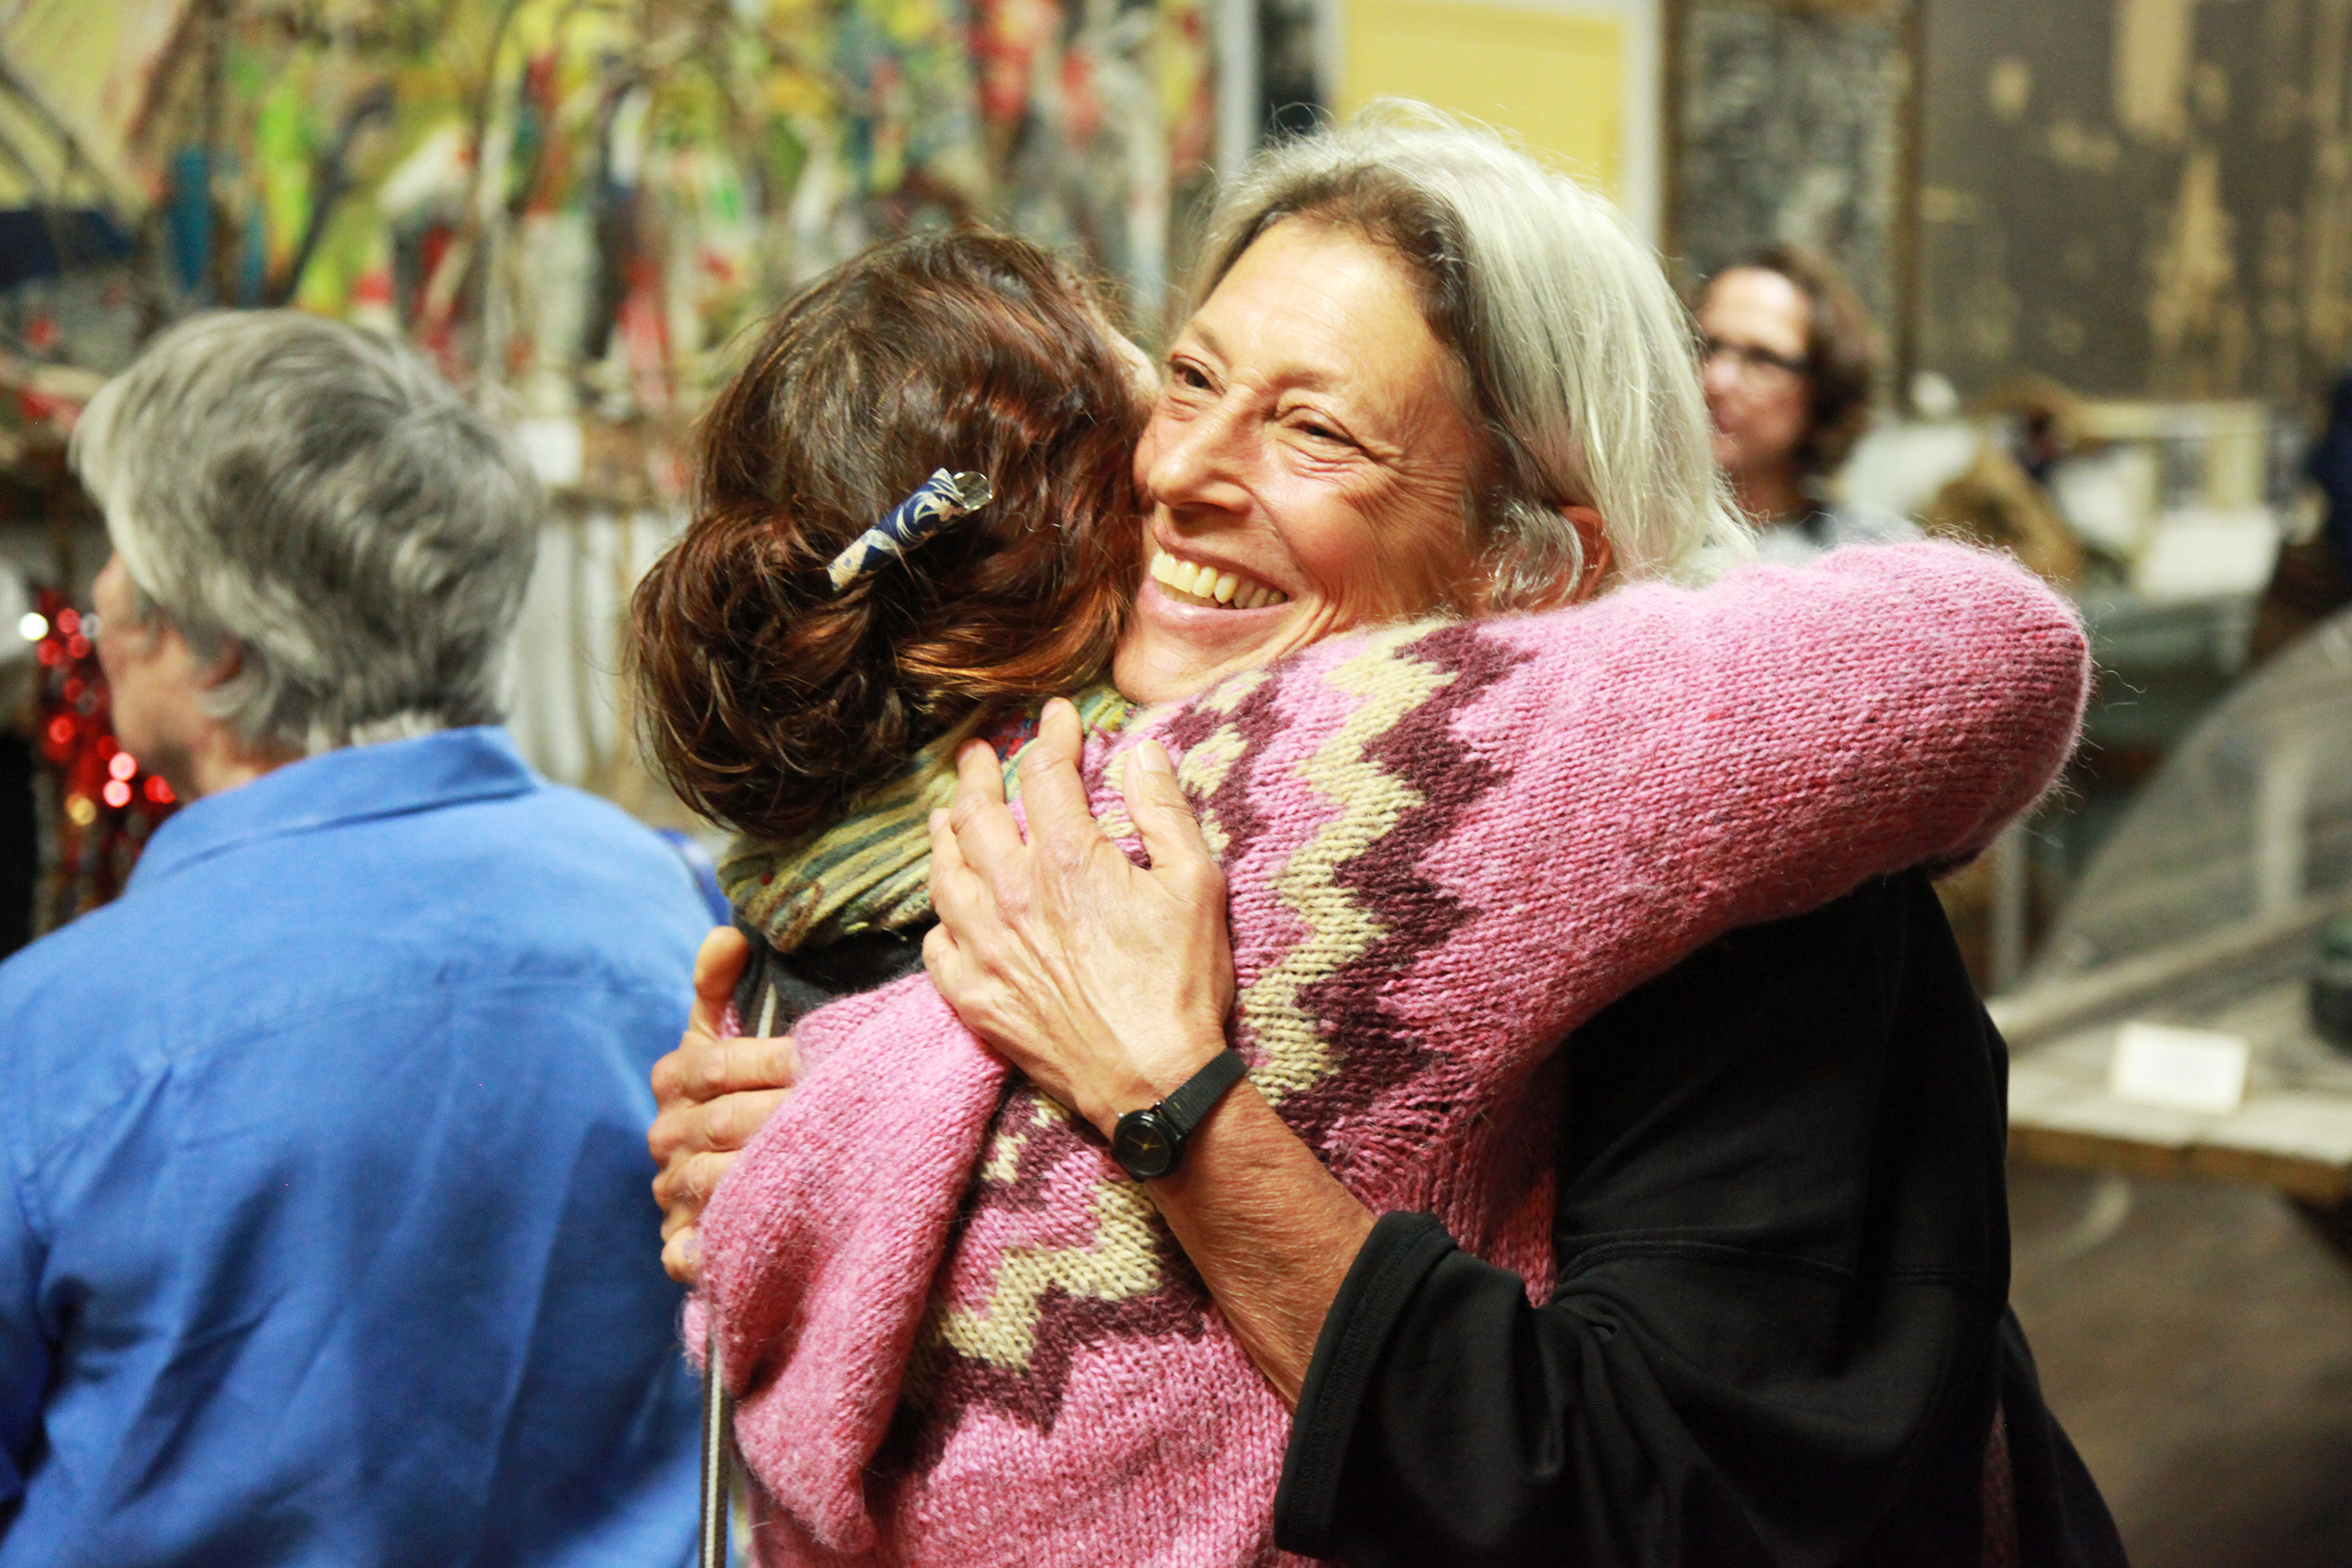 Onni Johnson hugging a woman in a pink sweater at a Trojan Women Project event